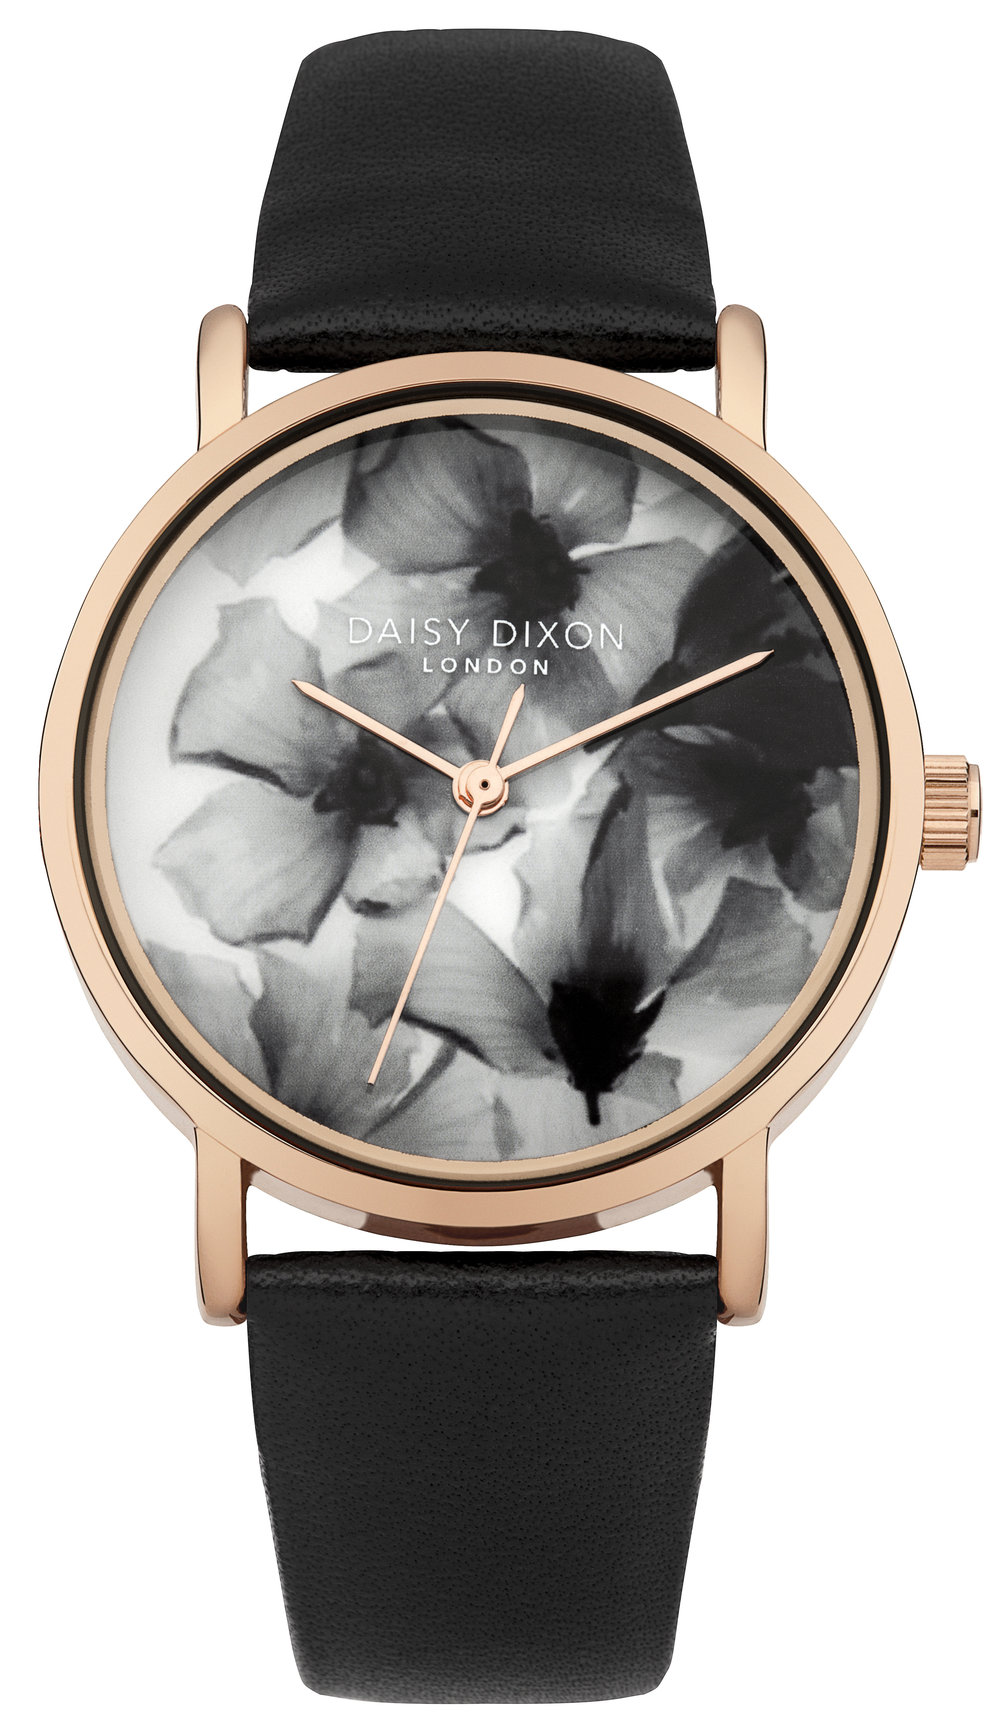 daisy-dixon-london-watches_scorpio-worldwide_travel-retail-distributor